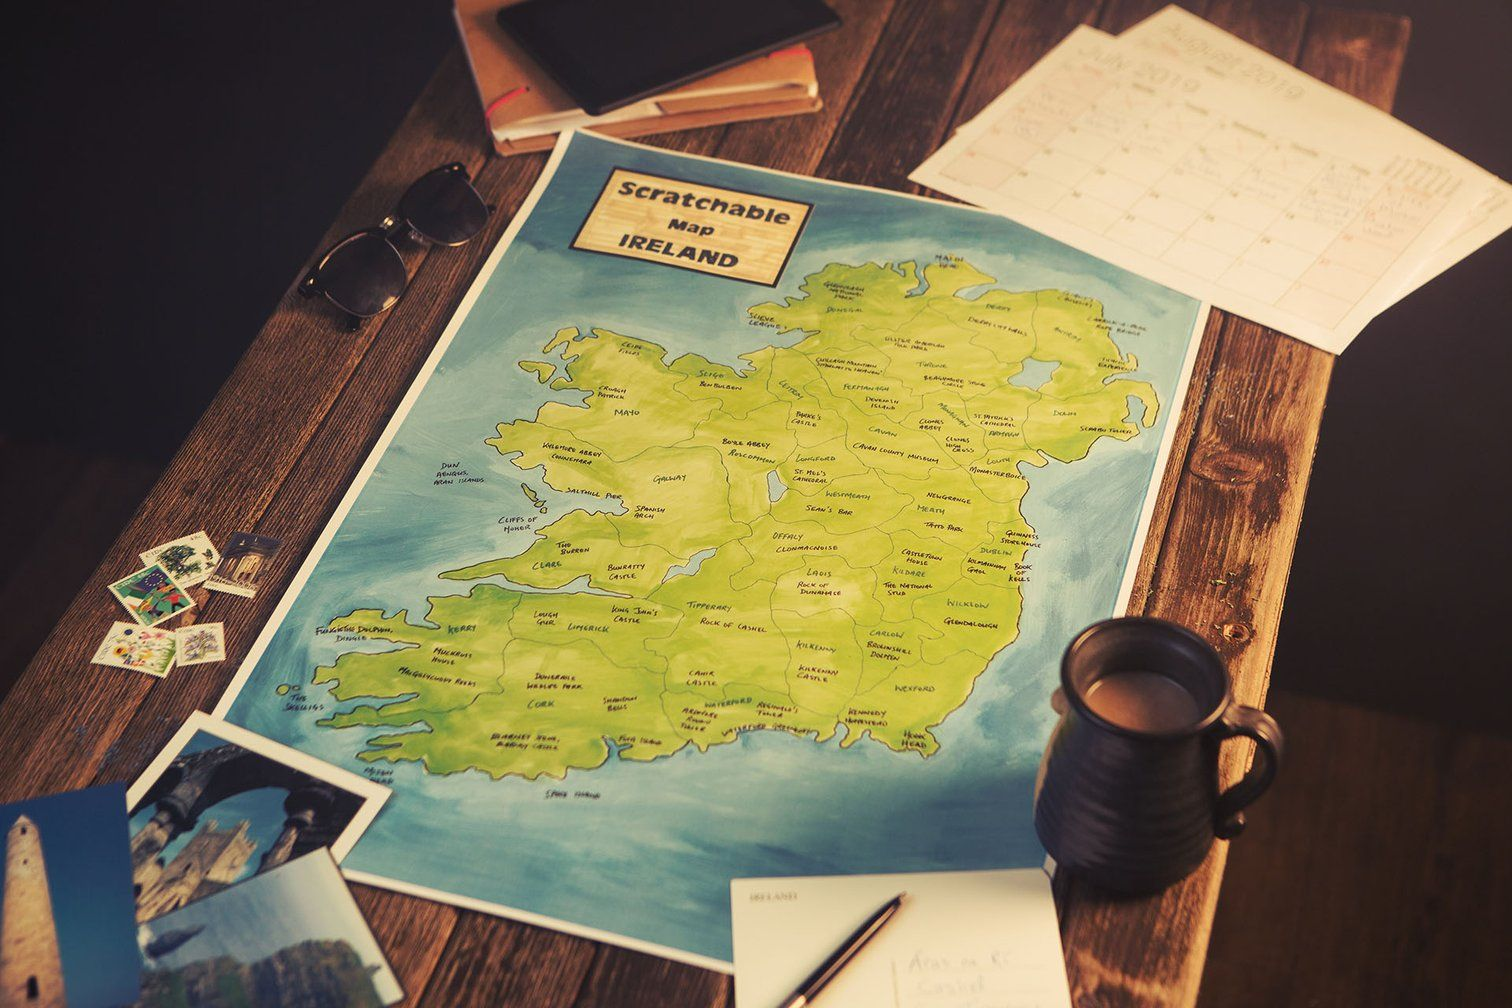 Scratchable Map Ireland | Cool places to visit, How to draw ...